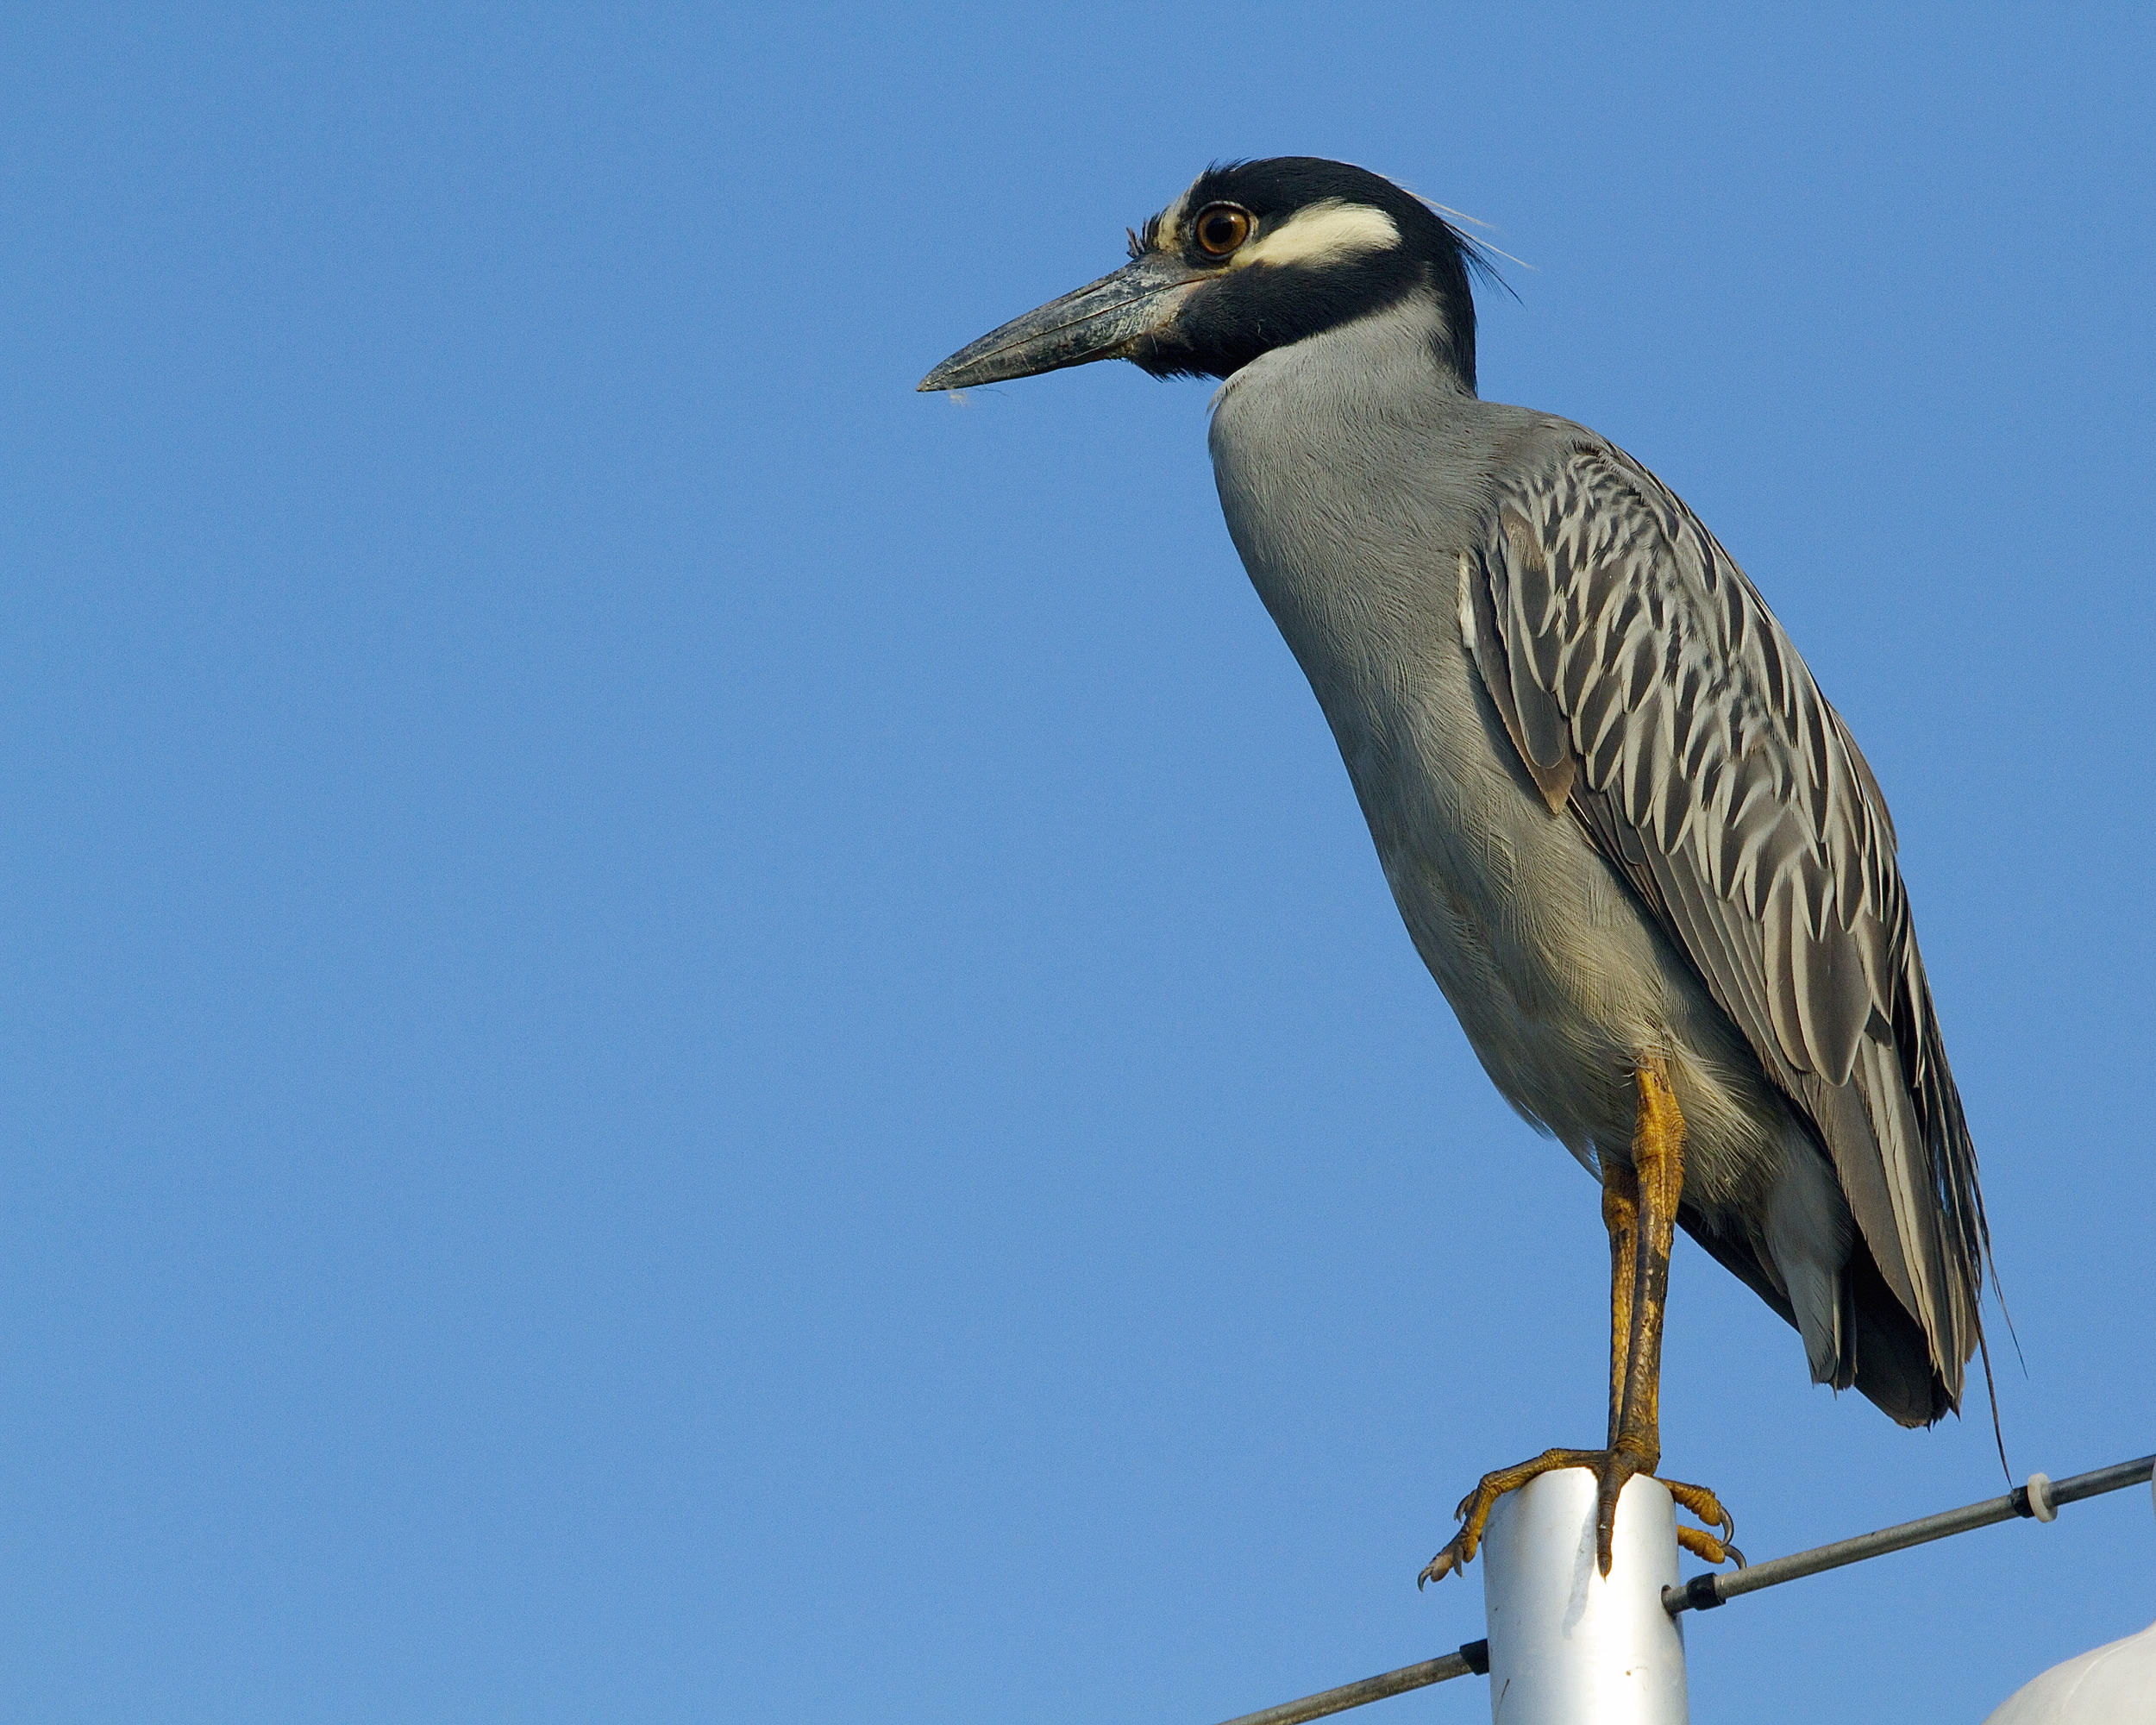 George, the Yellow Crowned Night Heron takes a perch and observes George Junior below in the mud. It is time to see if the young bird has learned to hunt in the mud.